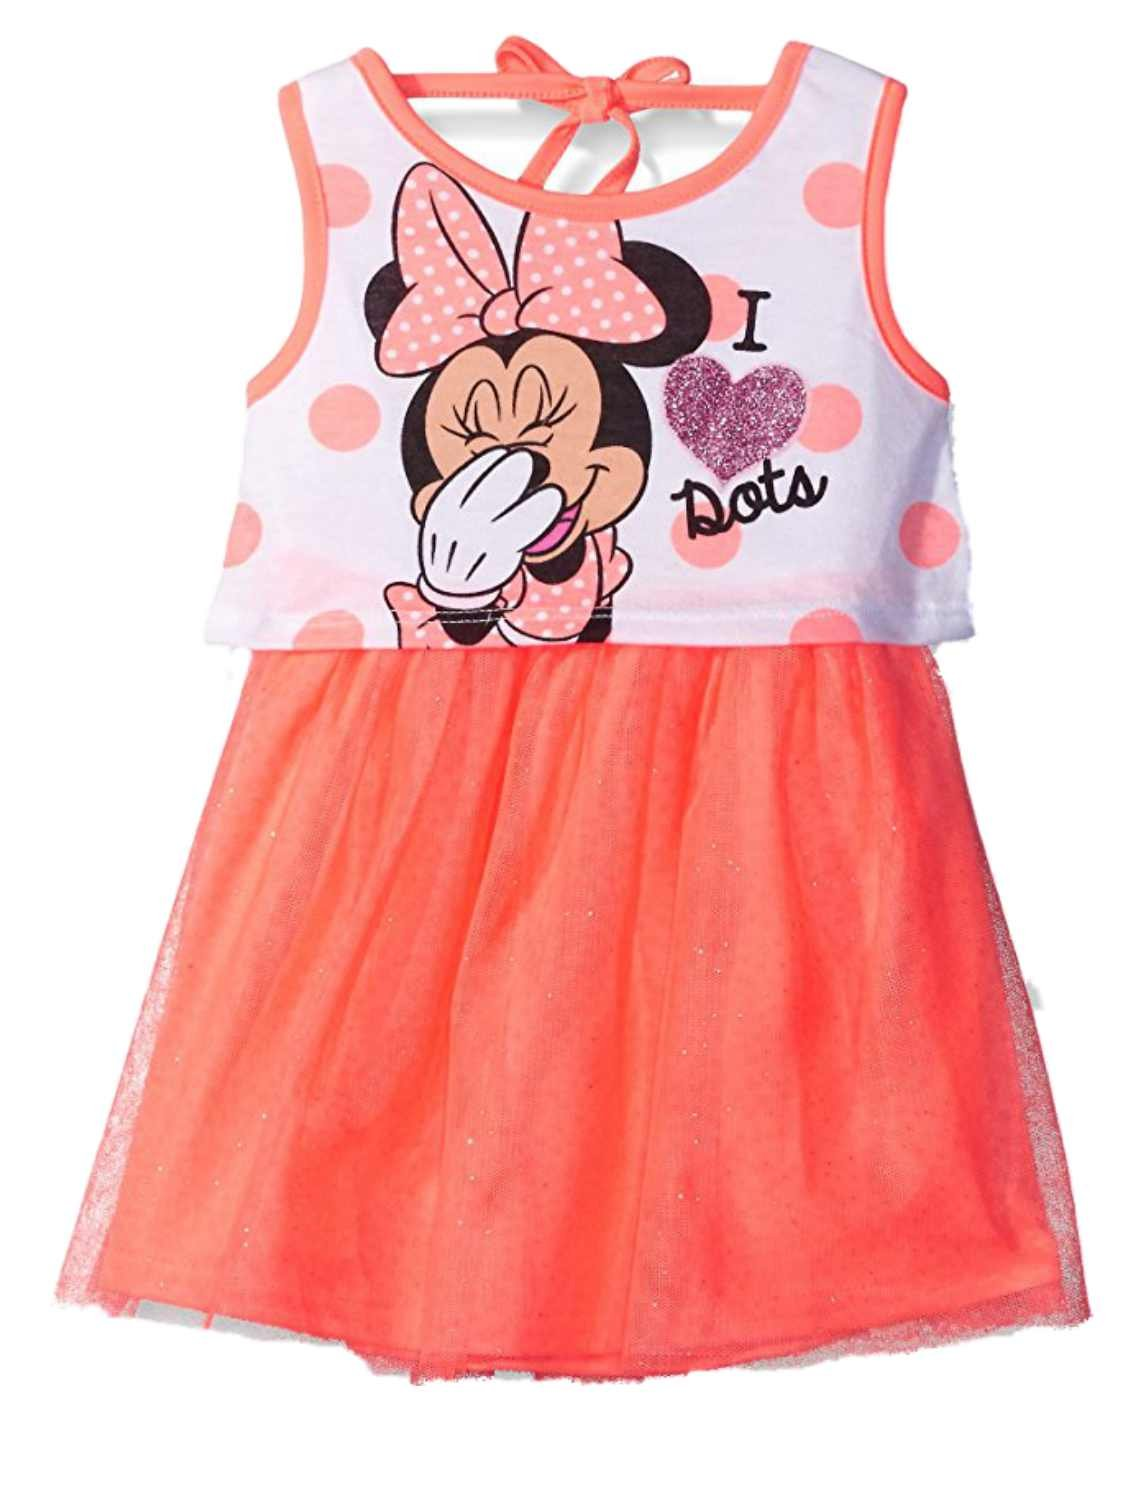 Disney Little Girls Minnie I Love Dots Jersey Dress with Glittered Tulle, Orange, 6 Little